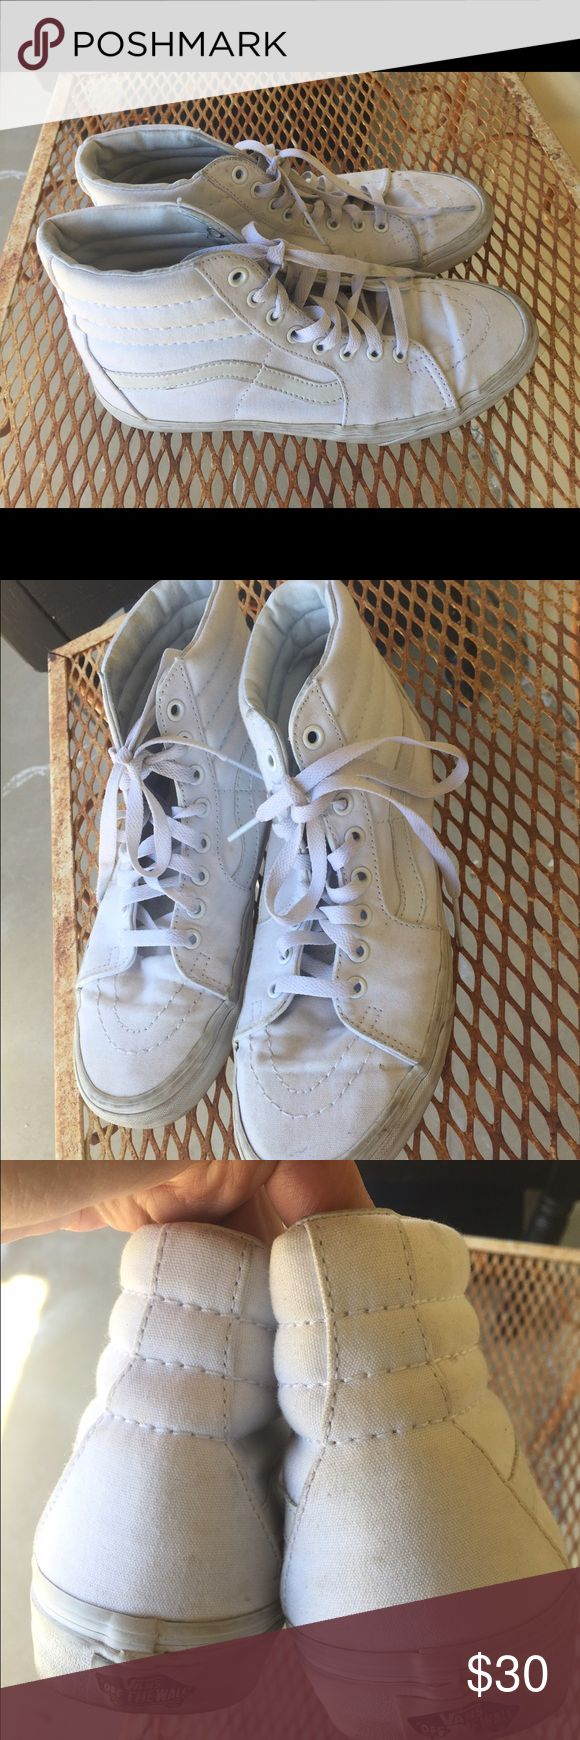 White Vans Sk8 high Size 9 women's 7.5 men's vguc So cute only wore a handful of times... still in very good used condition. Vans Shoes Sneakers